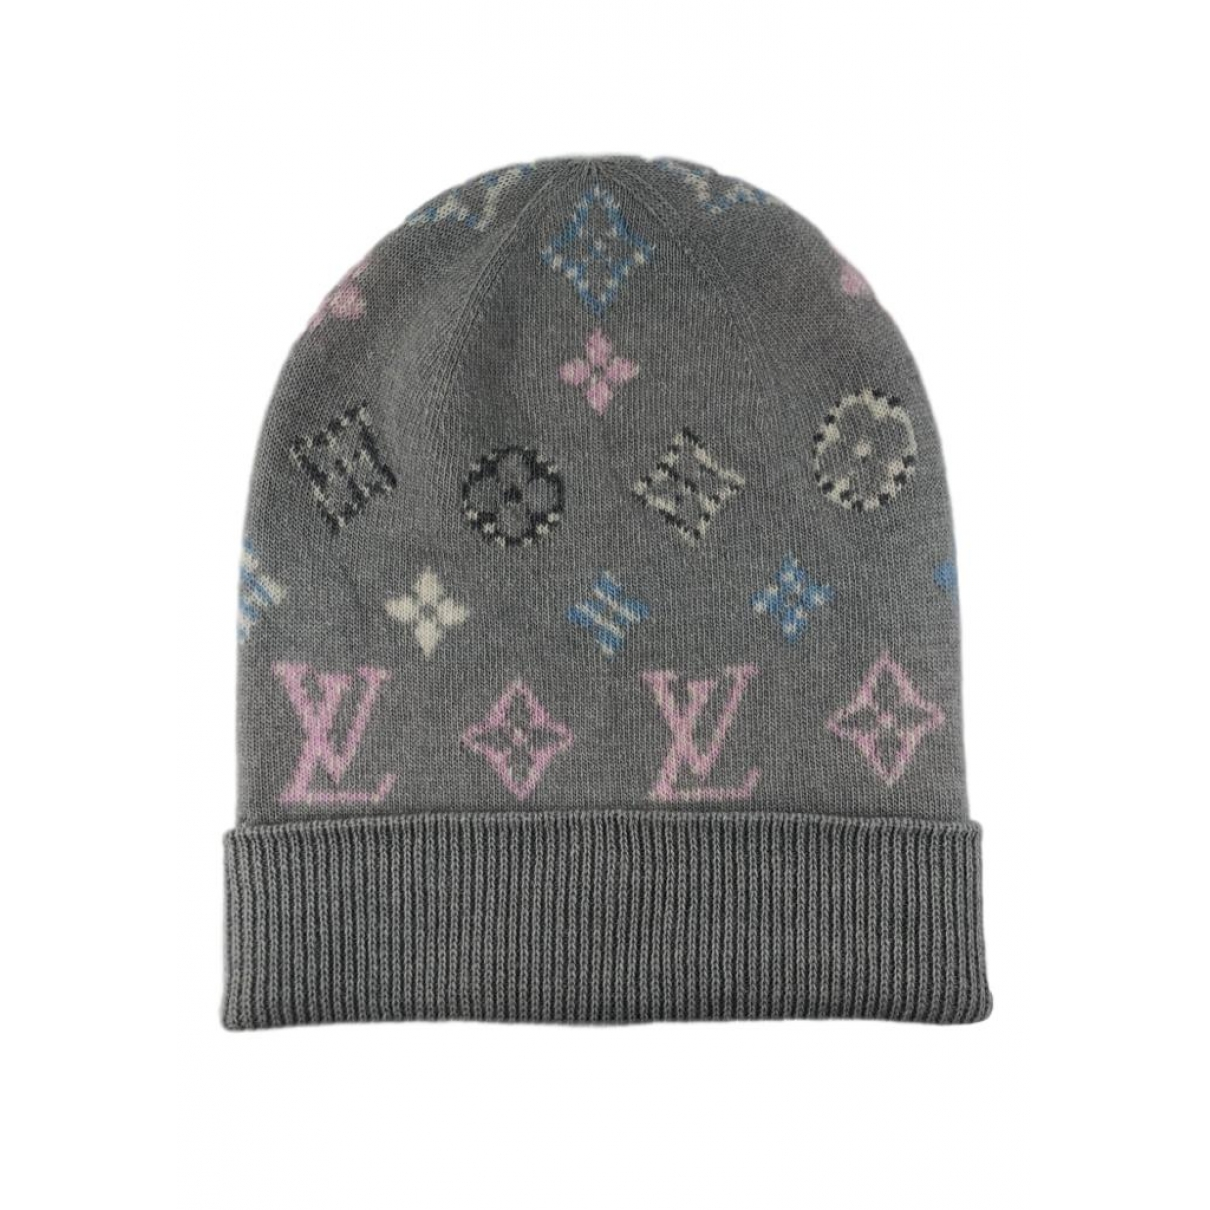 Louis Vuitton \N Grey Wool hat for Women M International